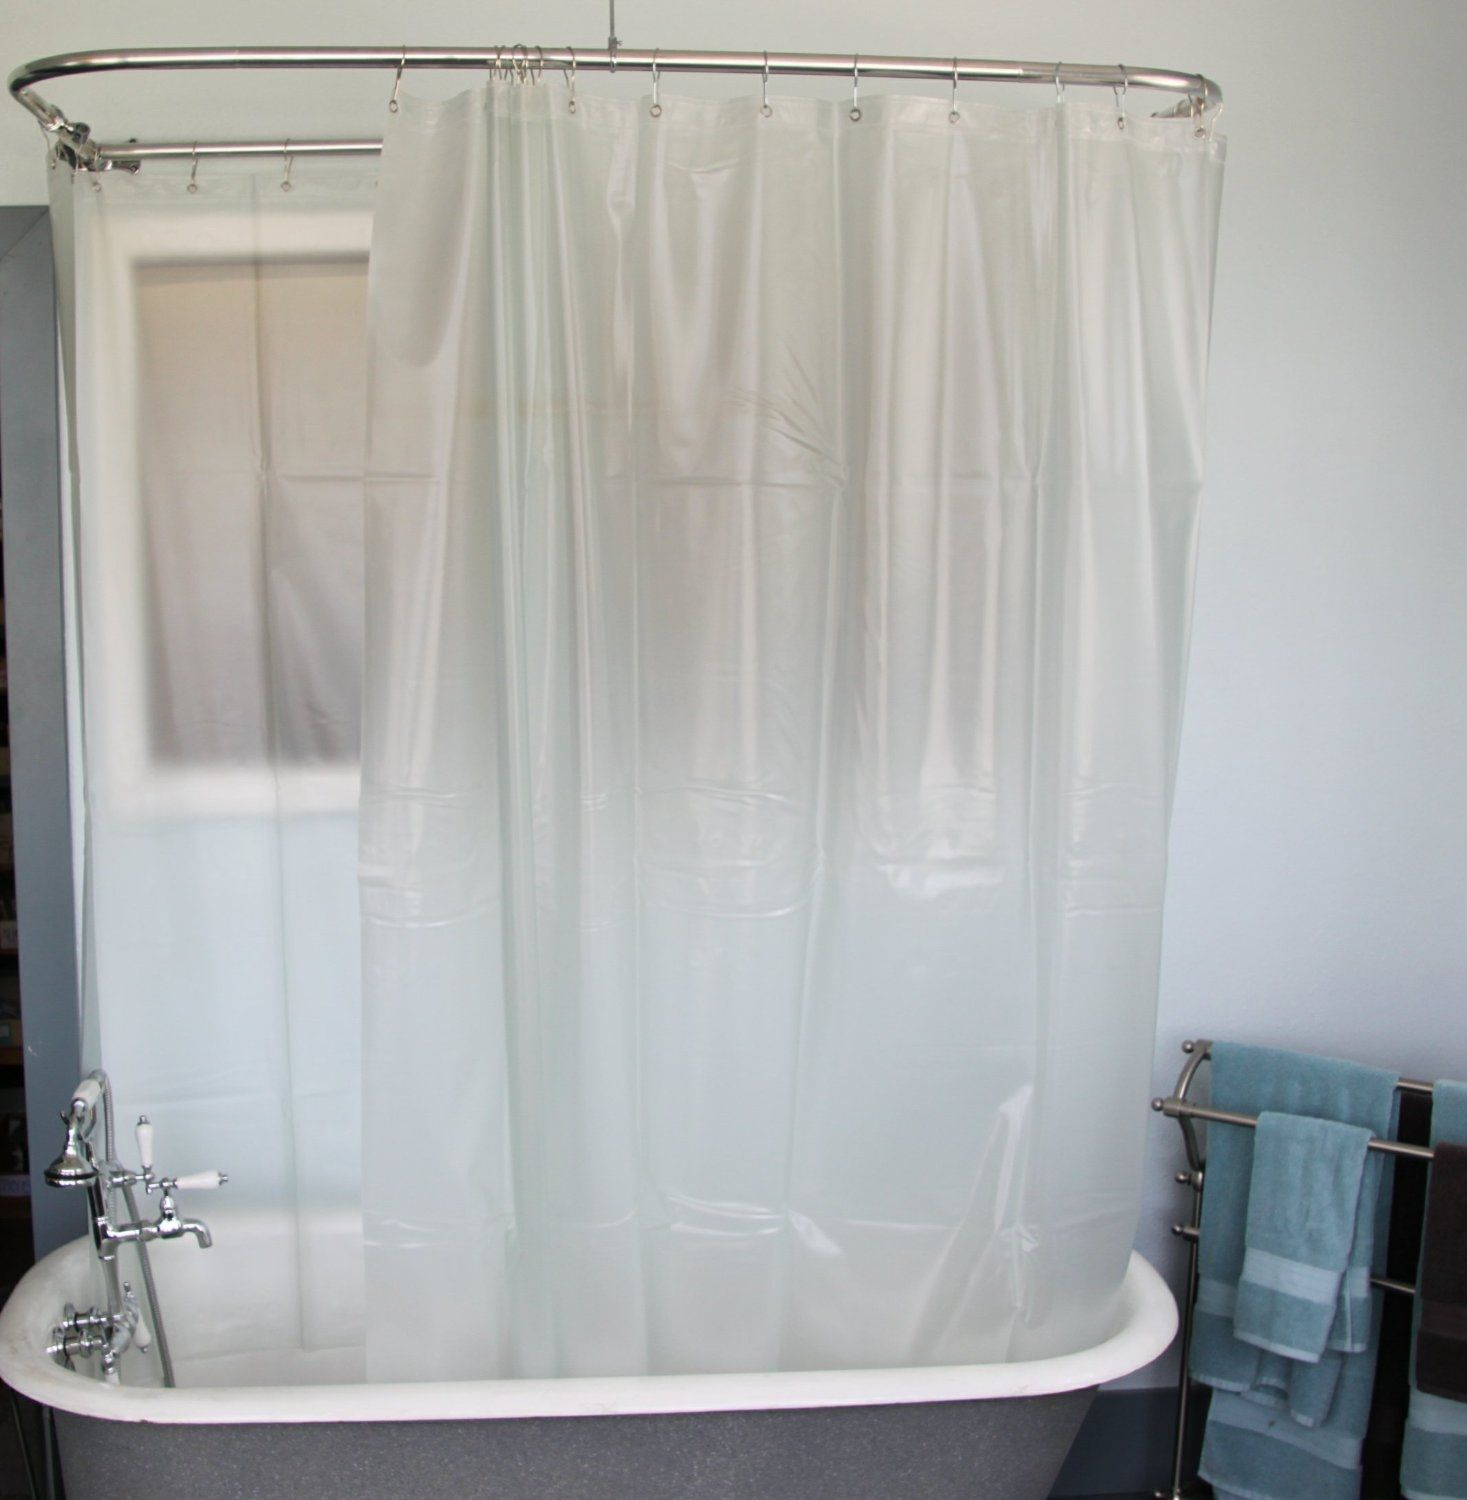 Extra long shower curtain rod legalizecrew pinterest